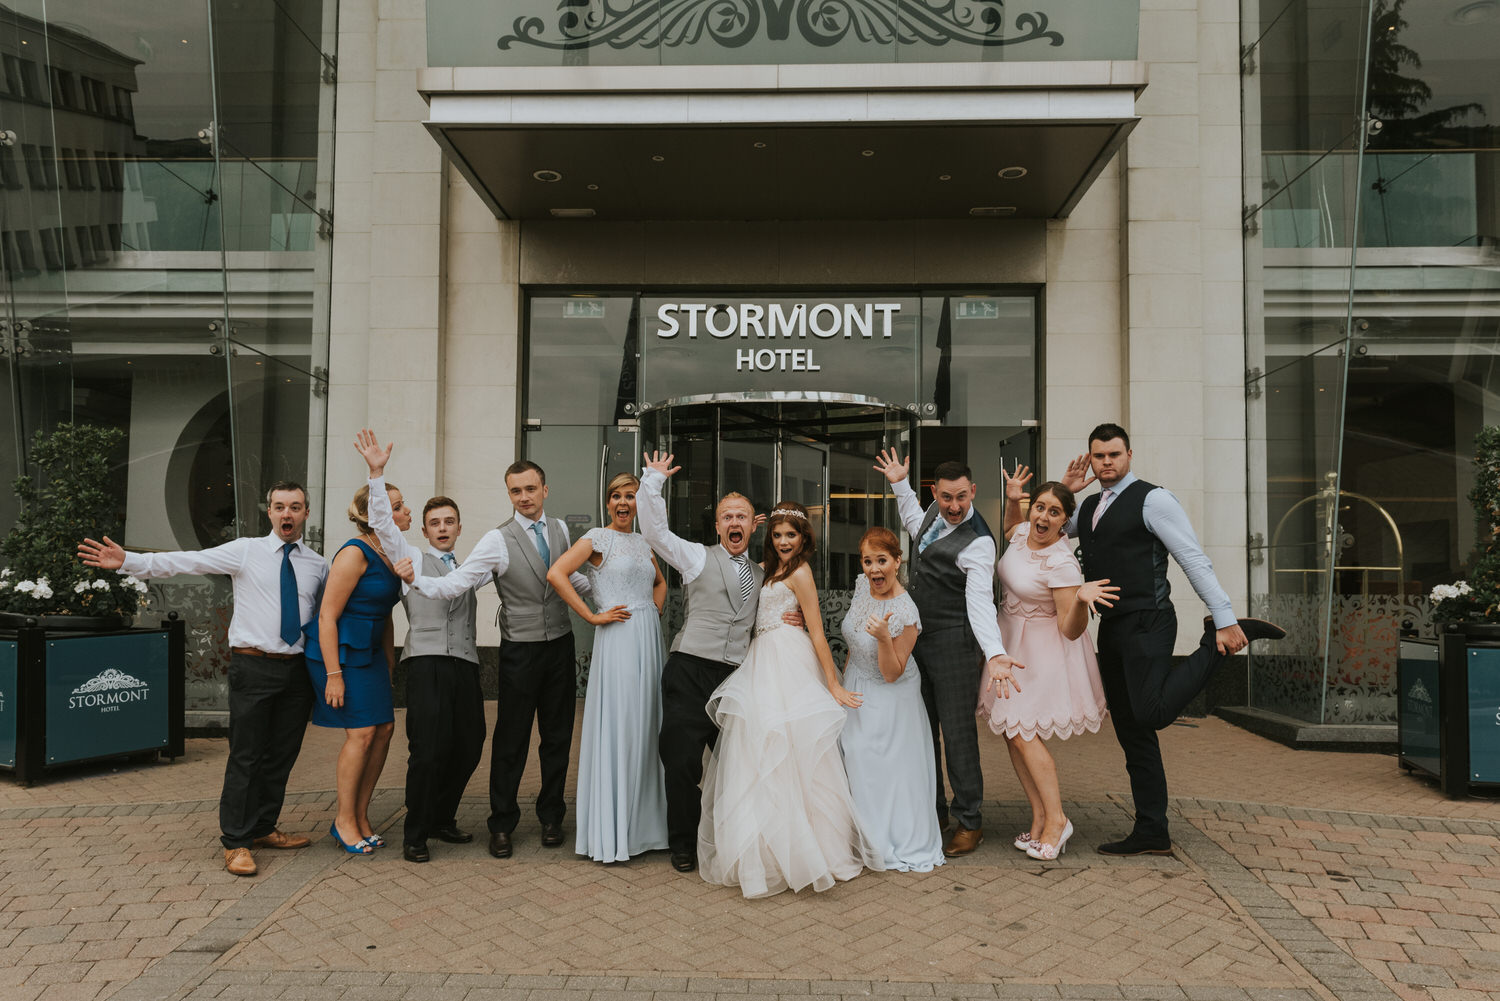 group wedding photos at the stormont hotel belfast